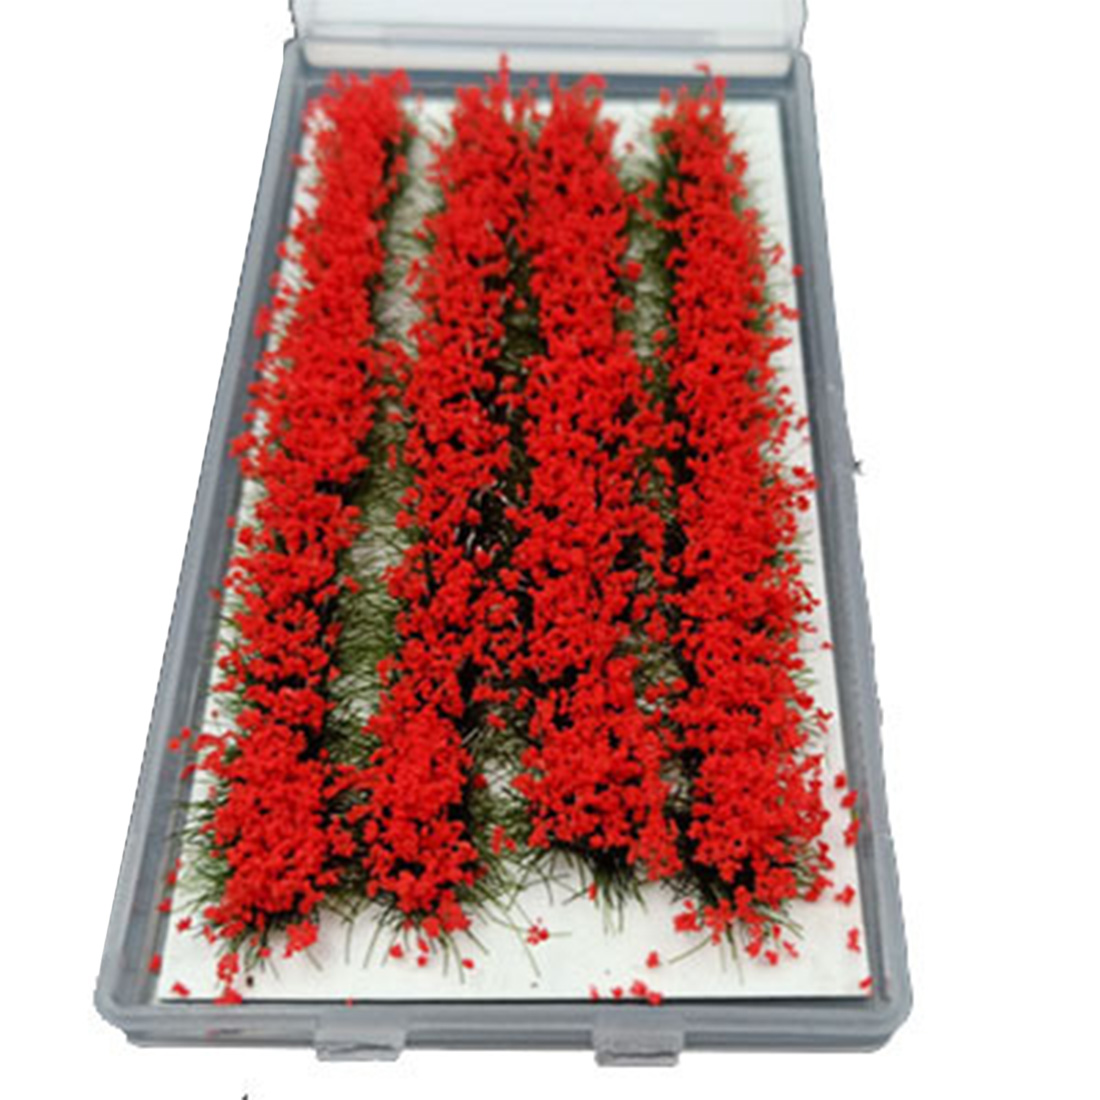 4Pcs/set DIY Miniature Model Scenario Material Long Flower Cluster For 1:35/1:48/1:72/1:87 Scale Sand Table - Red